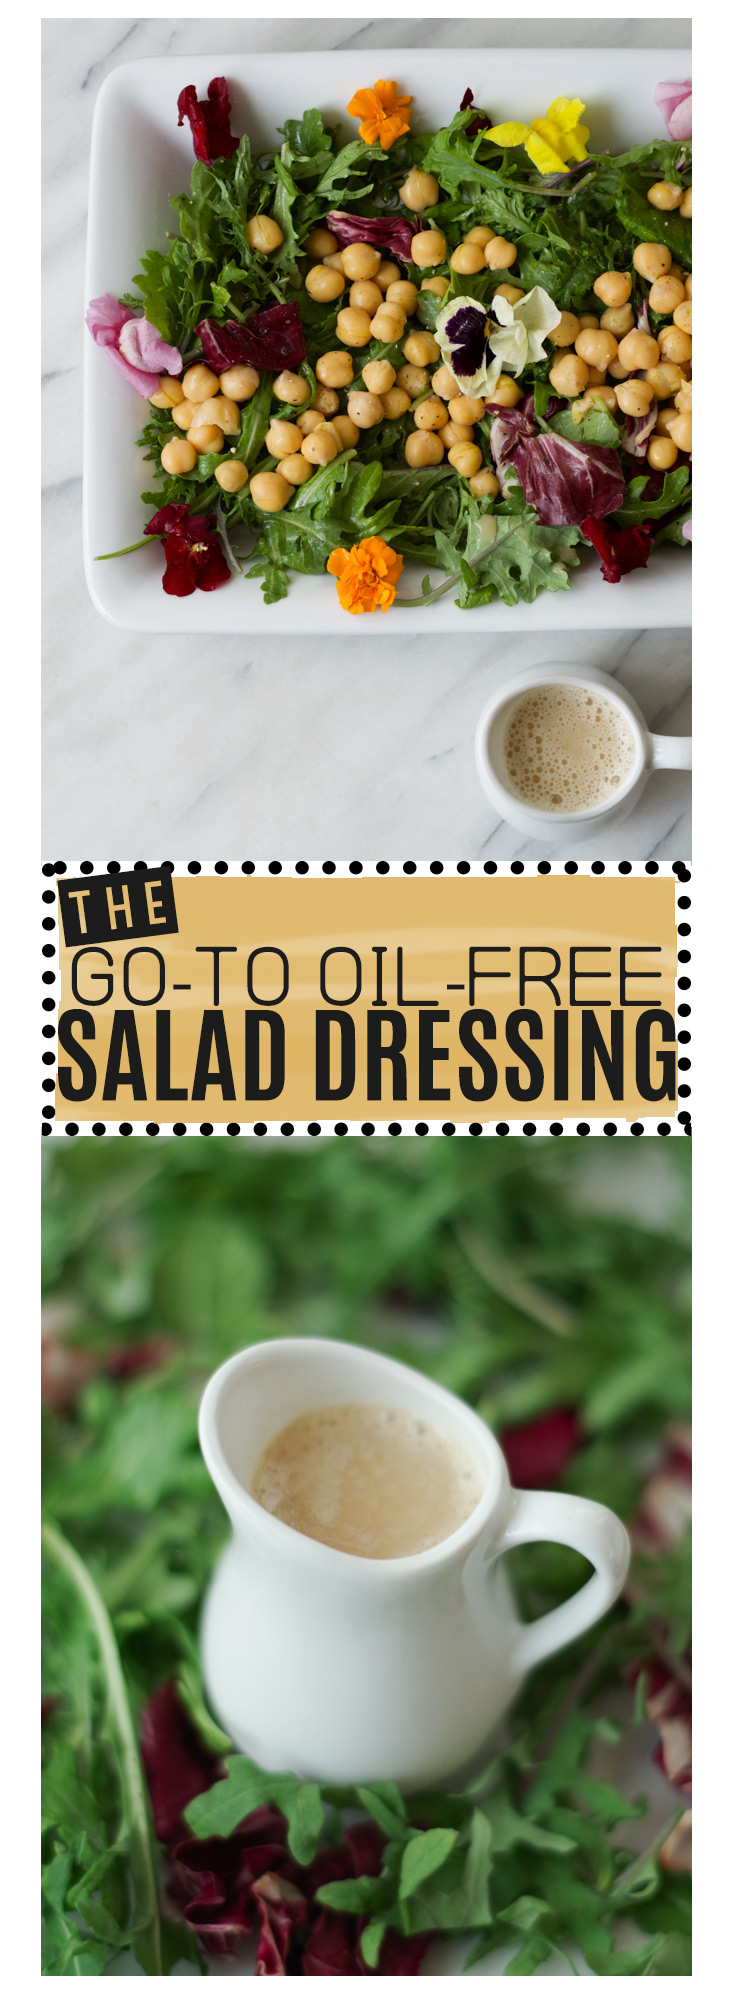 So easy to make, so easy to love, this lemony salad dressing will keep you going back for more veg! by Beautiful INgredient